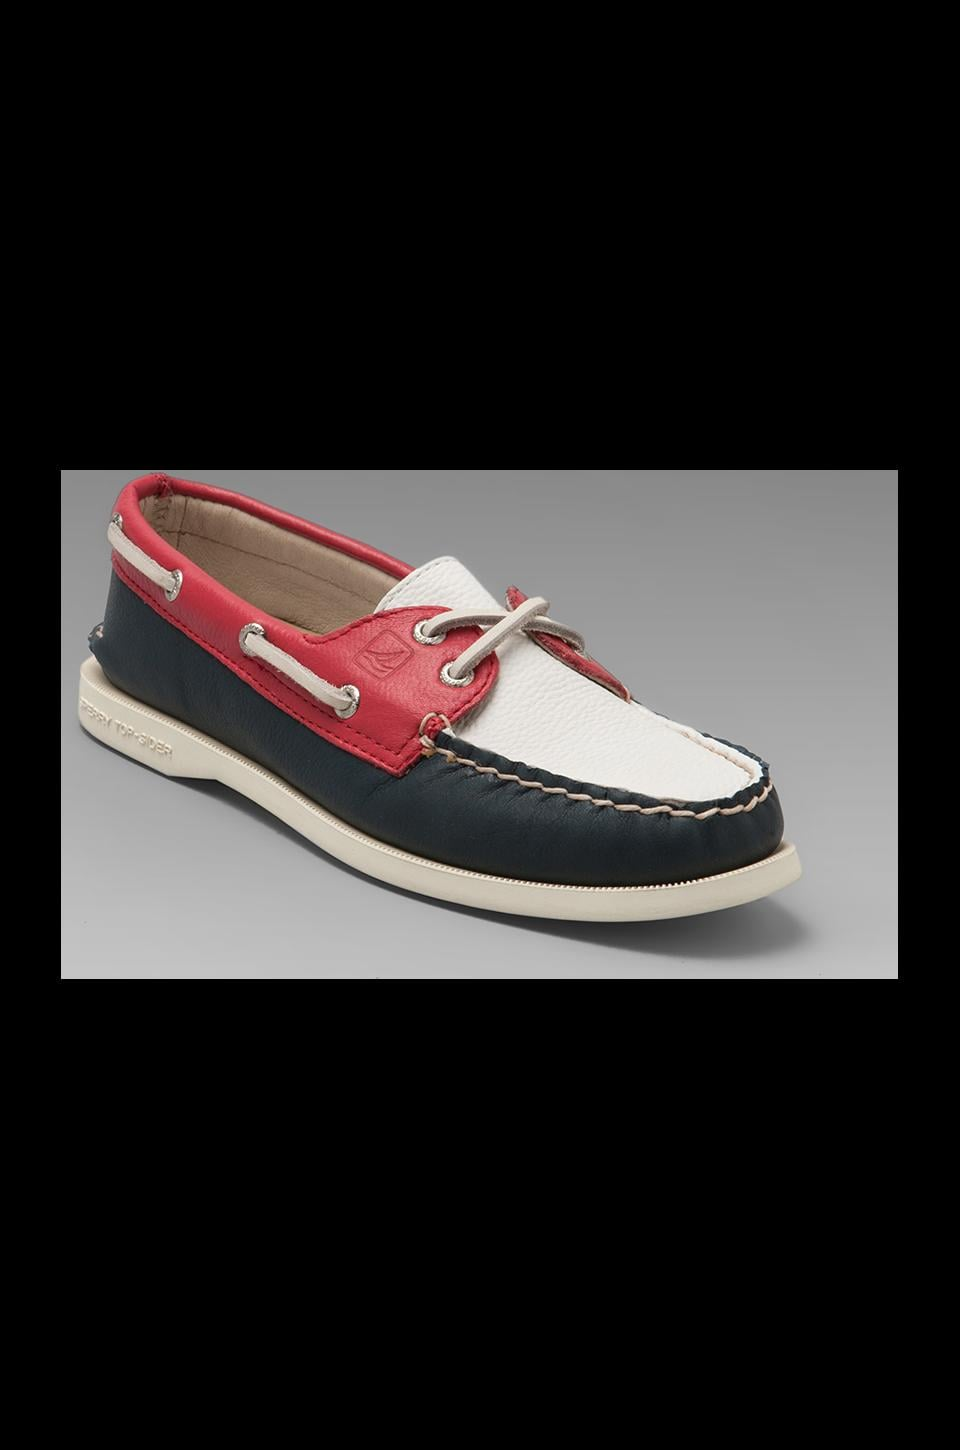 Sperry Top-Sider 2-Eye in Navy/Red/White